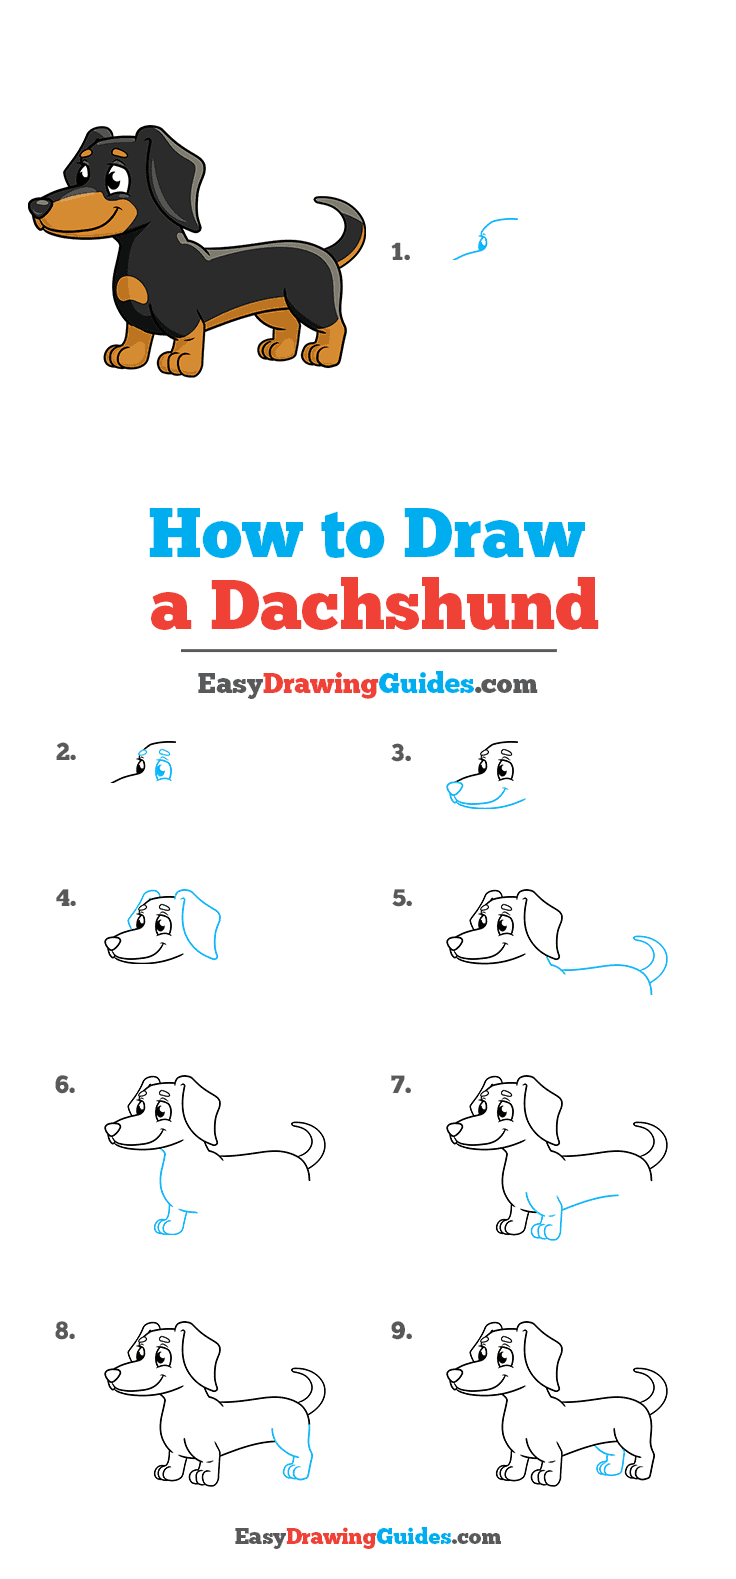 How to Draw a Dachshund Step by Step Tutorial Image